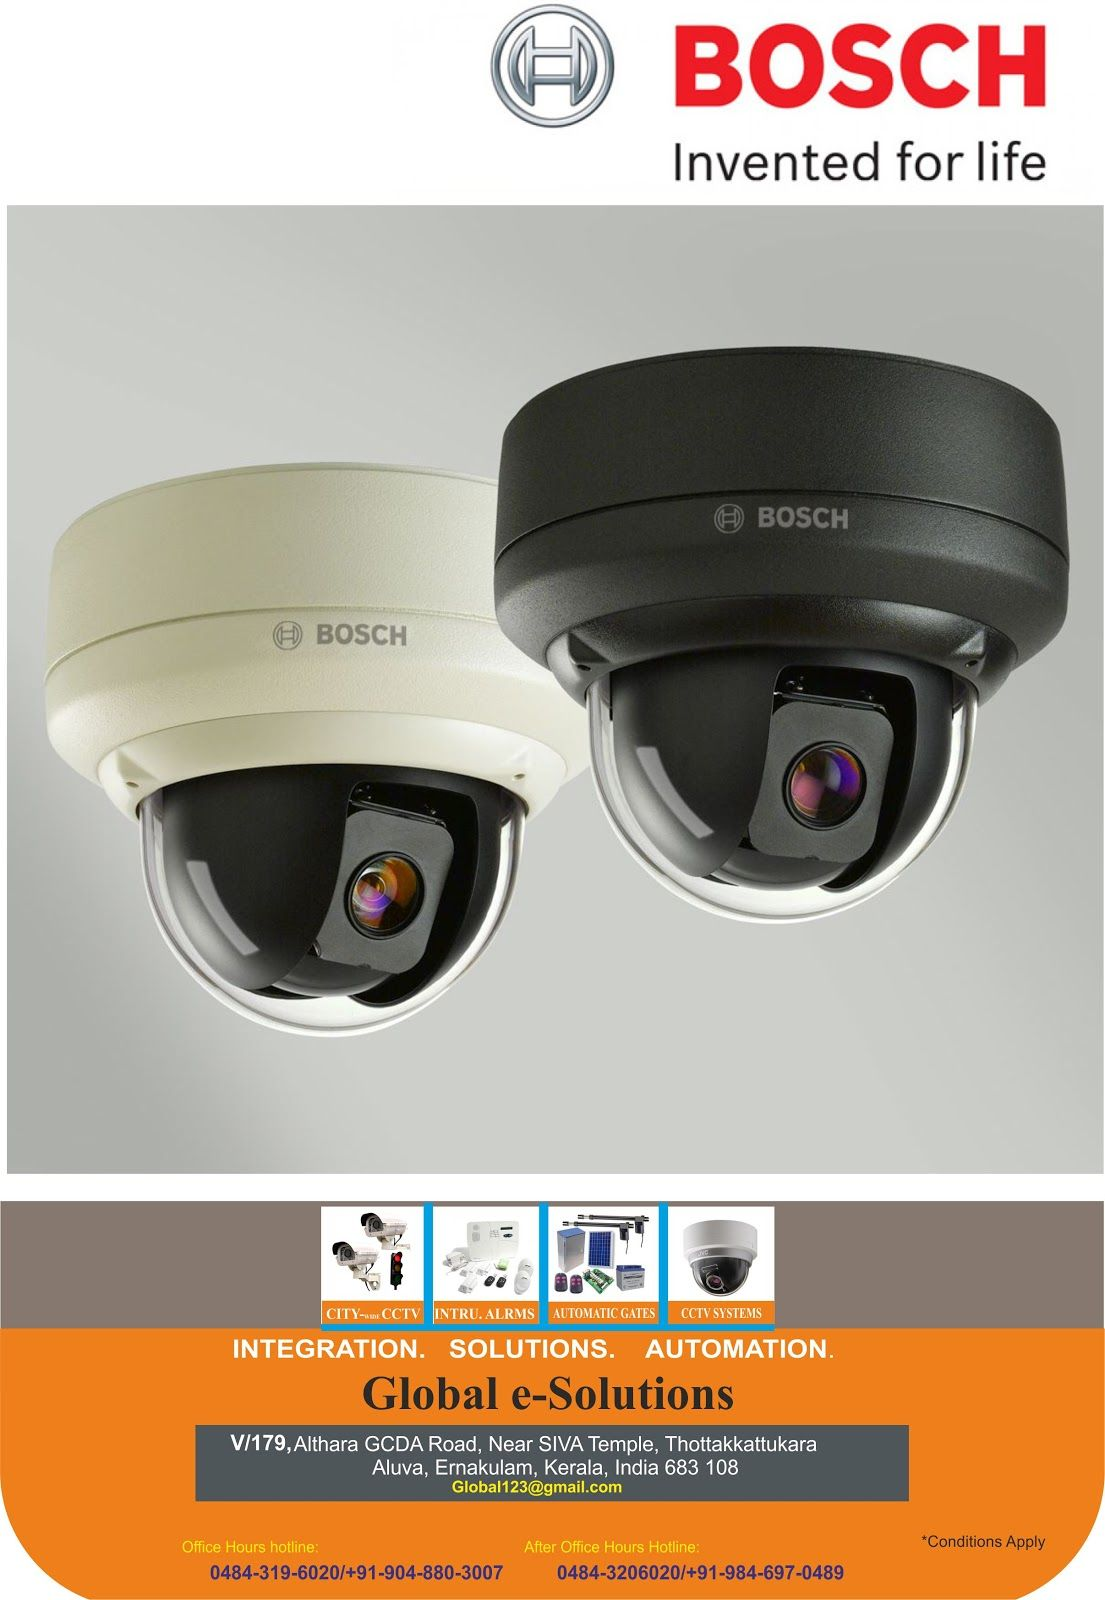 Do You Know What Are Are The Most Effective Home Security Cameras To Use In A Home To Catch A Cheater Vi Spy Camera Security Cameras For Home Video Security